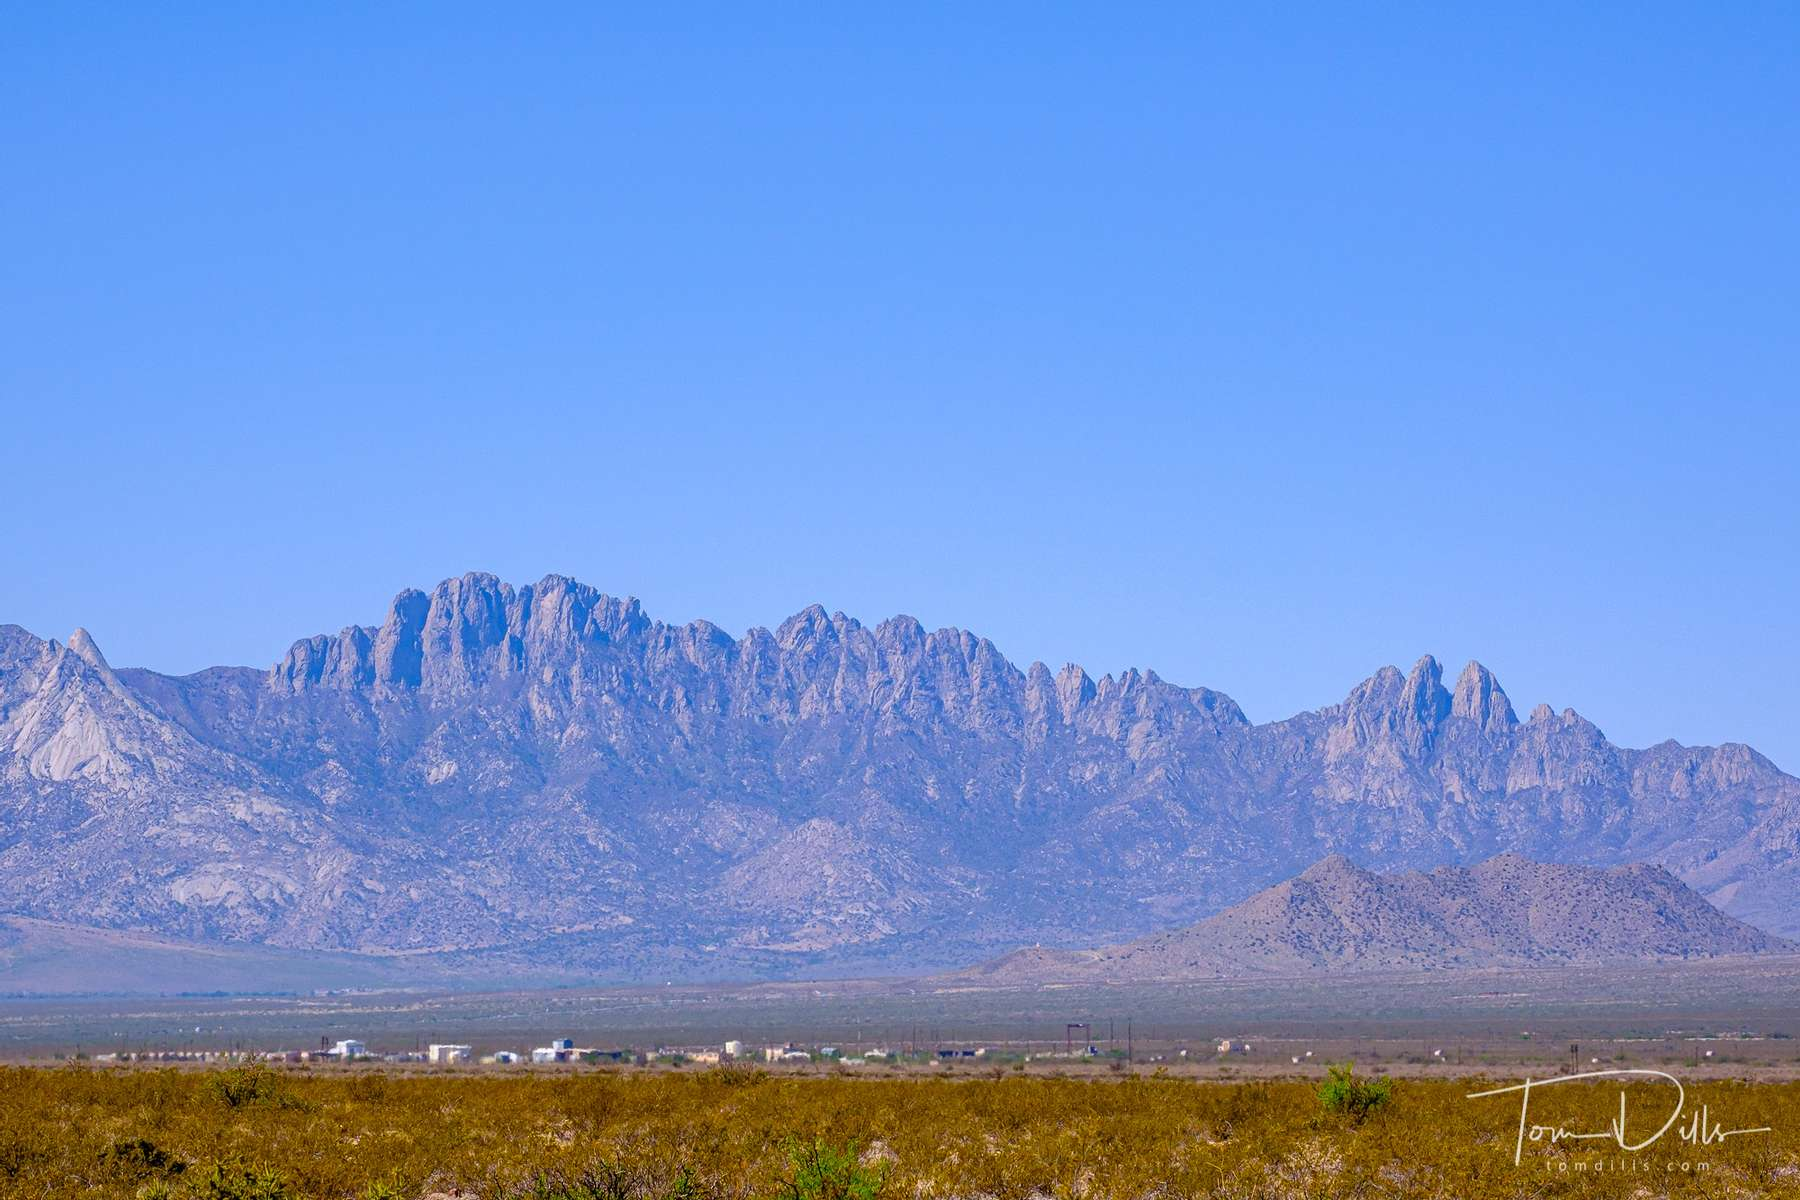 Scenery along US-70 approaching Las Cruces, New Mexico